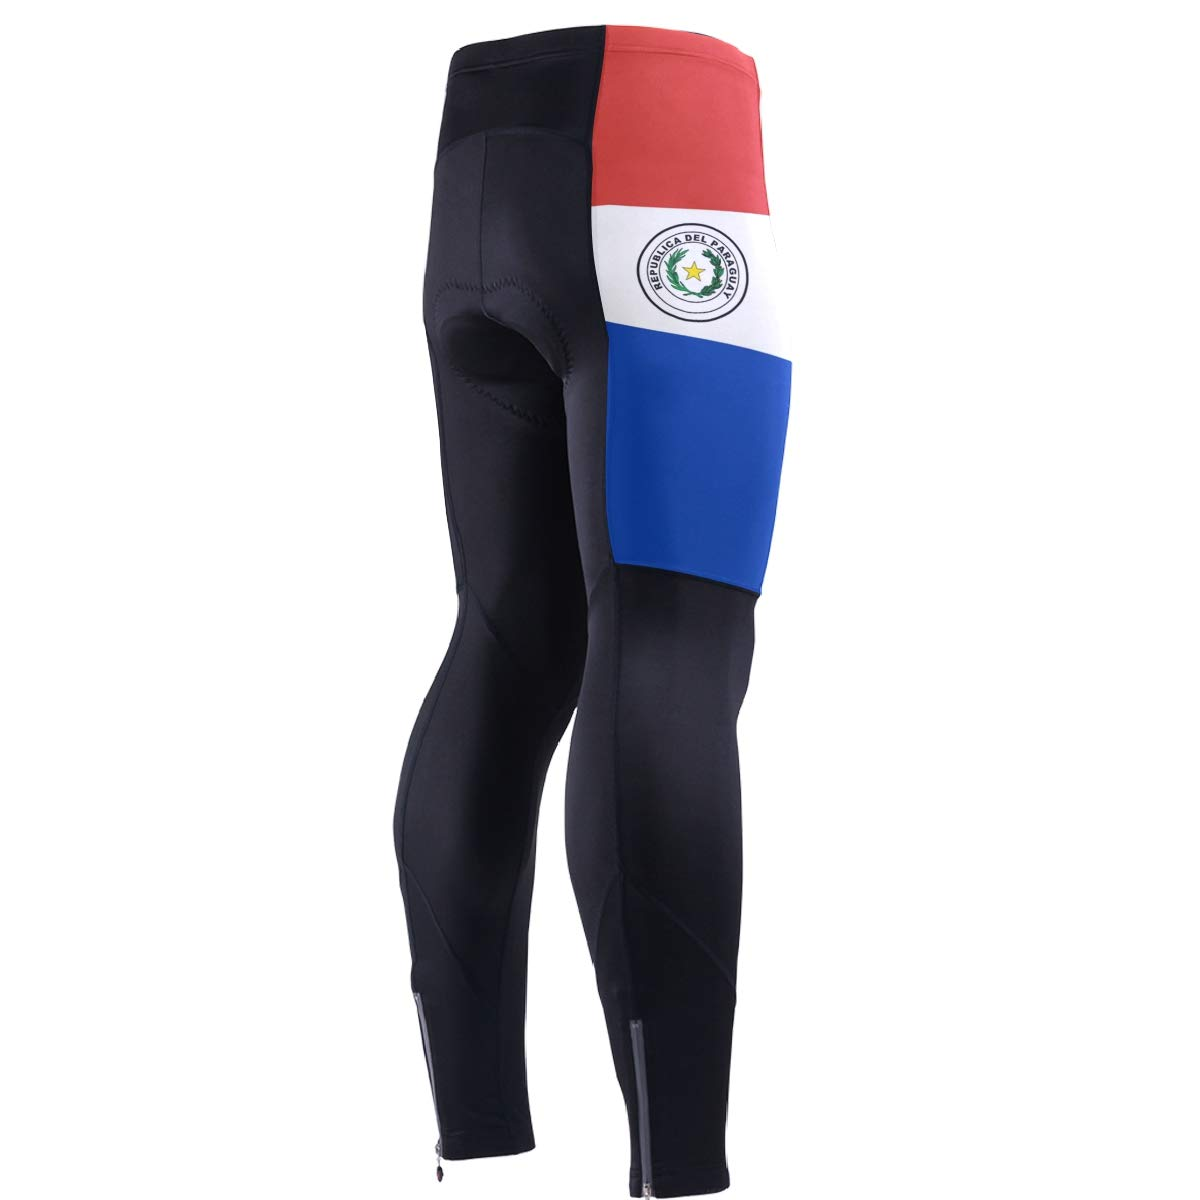 CHINEIN Men's Cycling Jersey Long Sleeve with 3 Rear Pockets Pants Paraguay Flag by CHINEIN